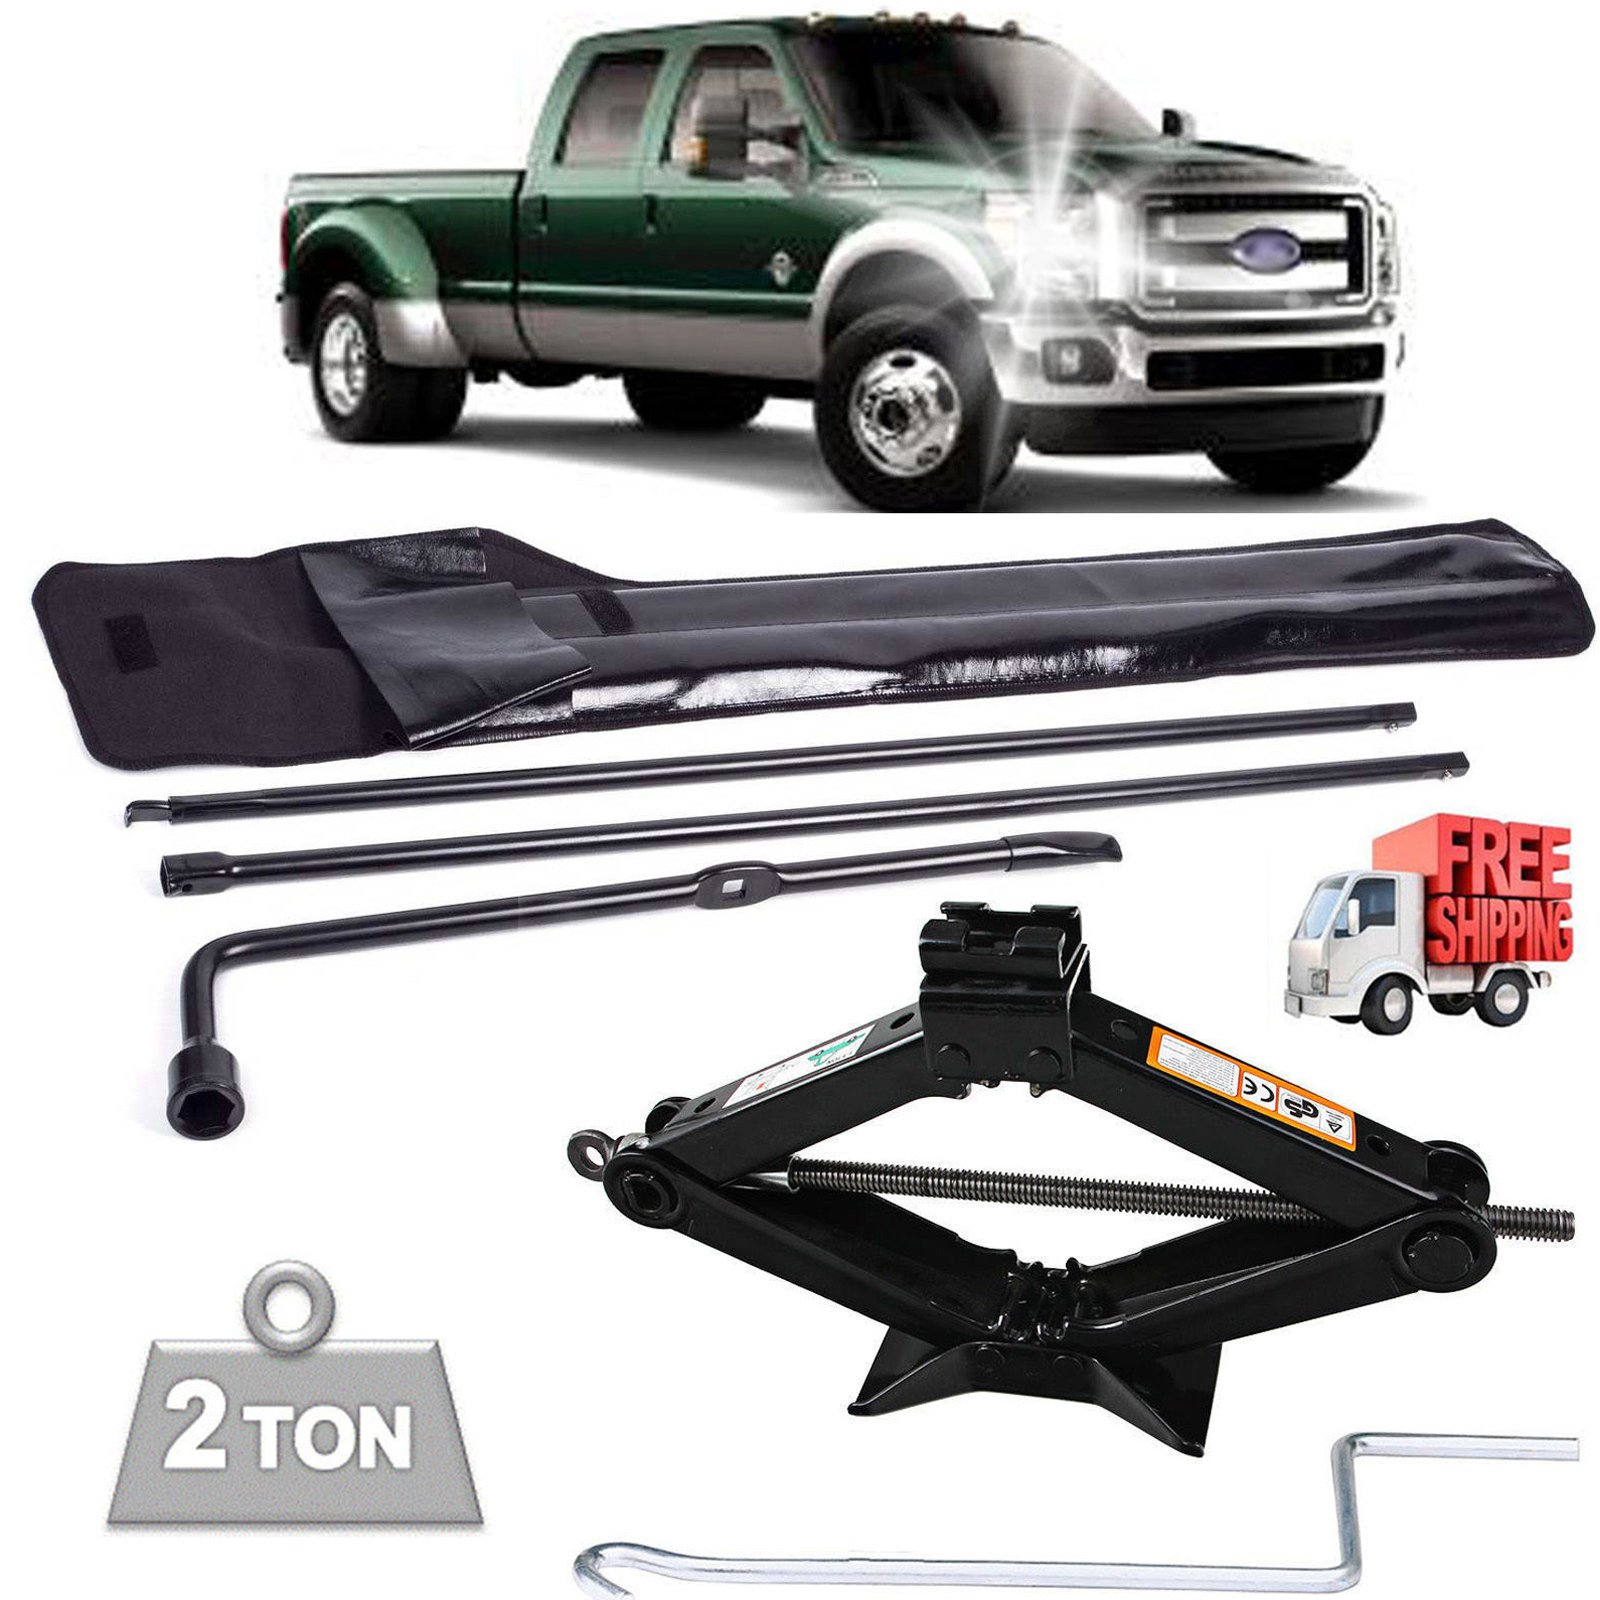 Spare Tire Changing Repair Tools Set for Ford F250 F350 F450 F550 (03-07) Lug Wrench Jack Hook Extension Irons Replacement OEM + Steel Scissor Car Jack 2 Ton/385mm Capacity with Speed Handle US Ship by DICN